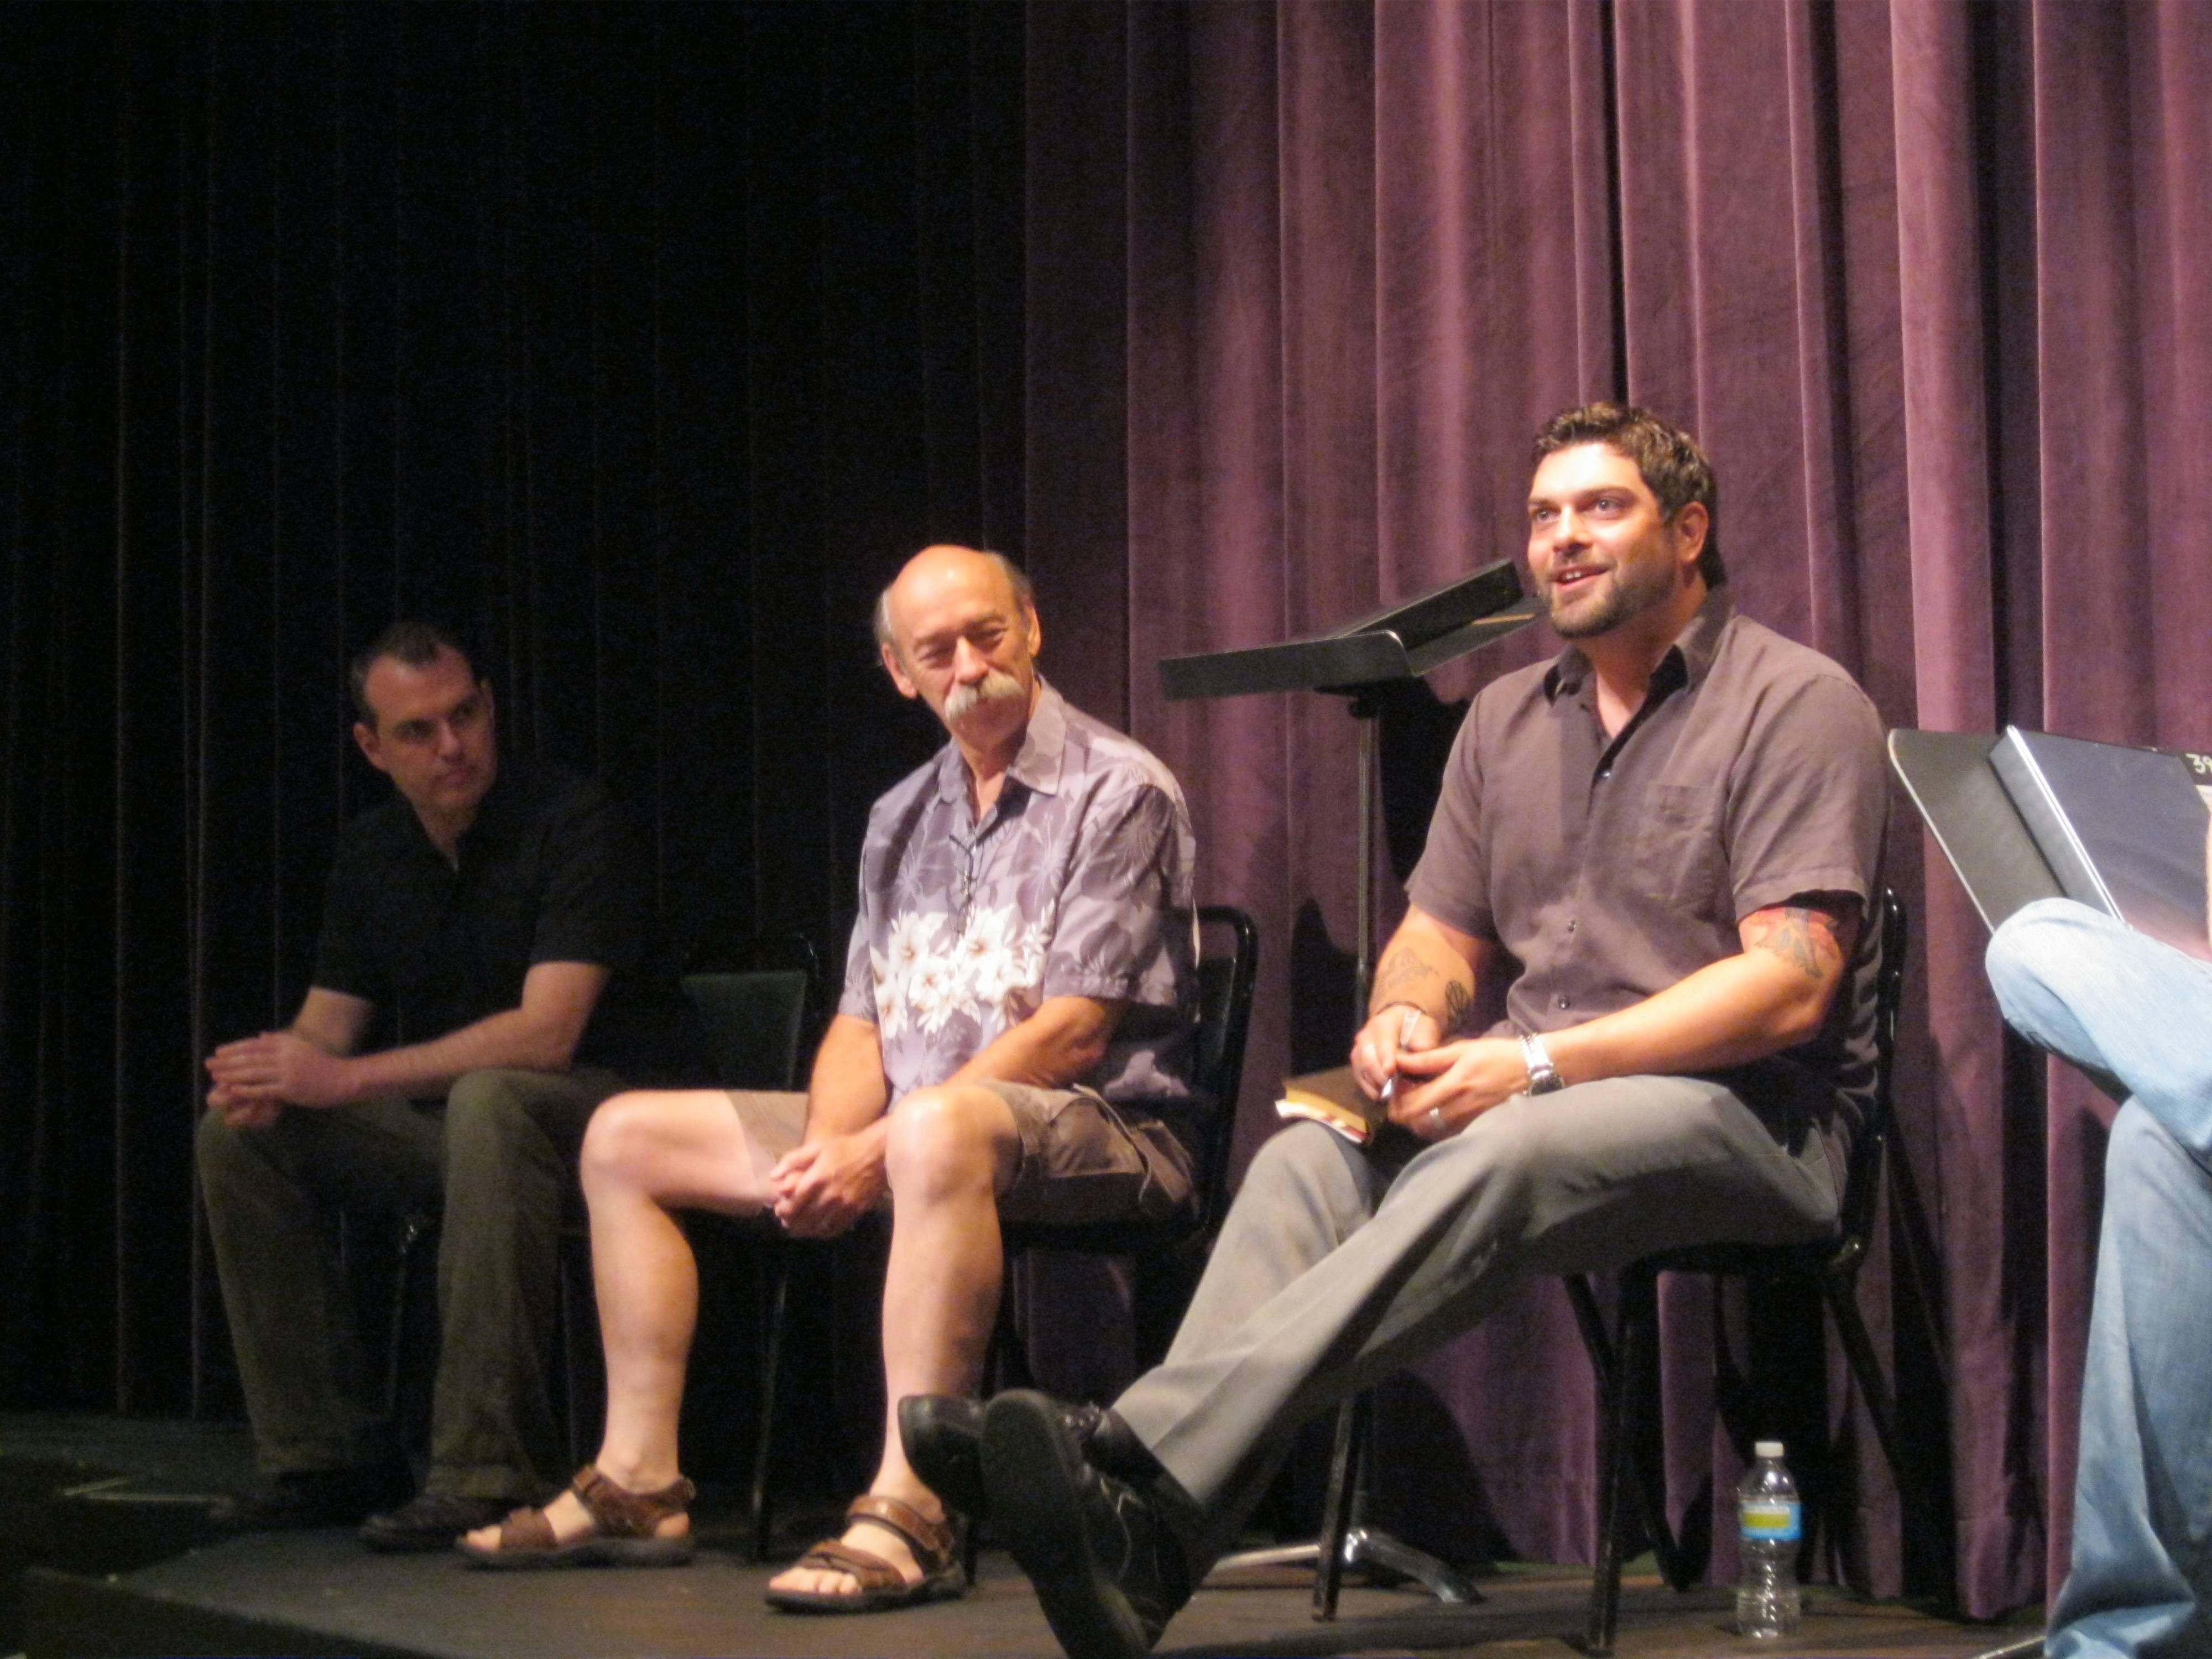 Playwright K. Frithjof Peterson of Michigan participates with Scientist Bruce Worthel of Fermilab and artistic director John Gawlik in a group discussion about his play development with patrons during the Inaugural Collider 2011 this past July.